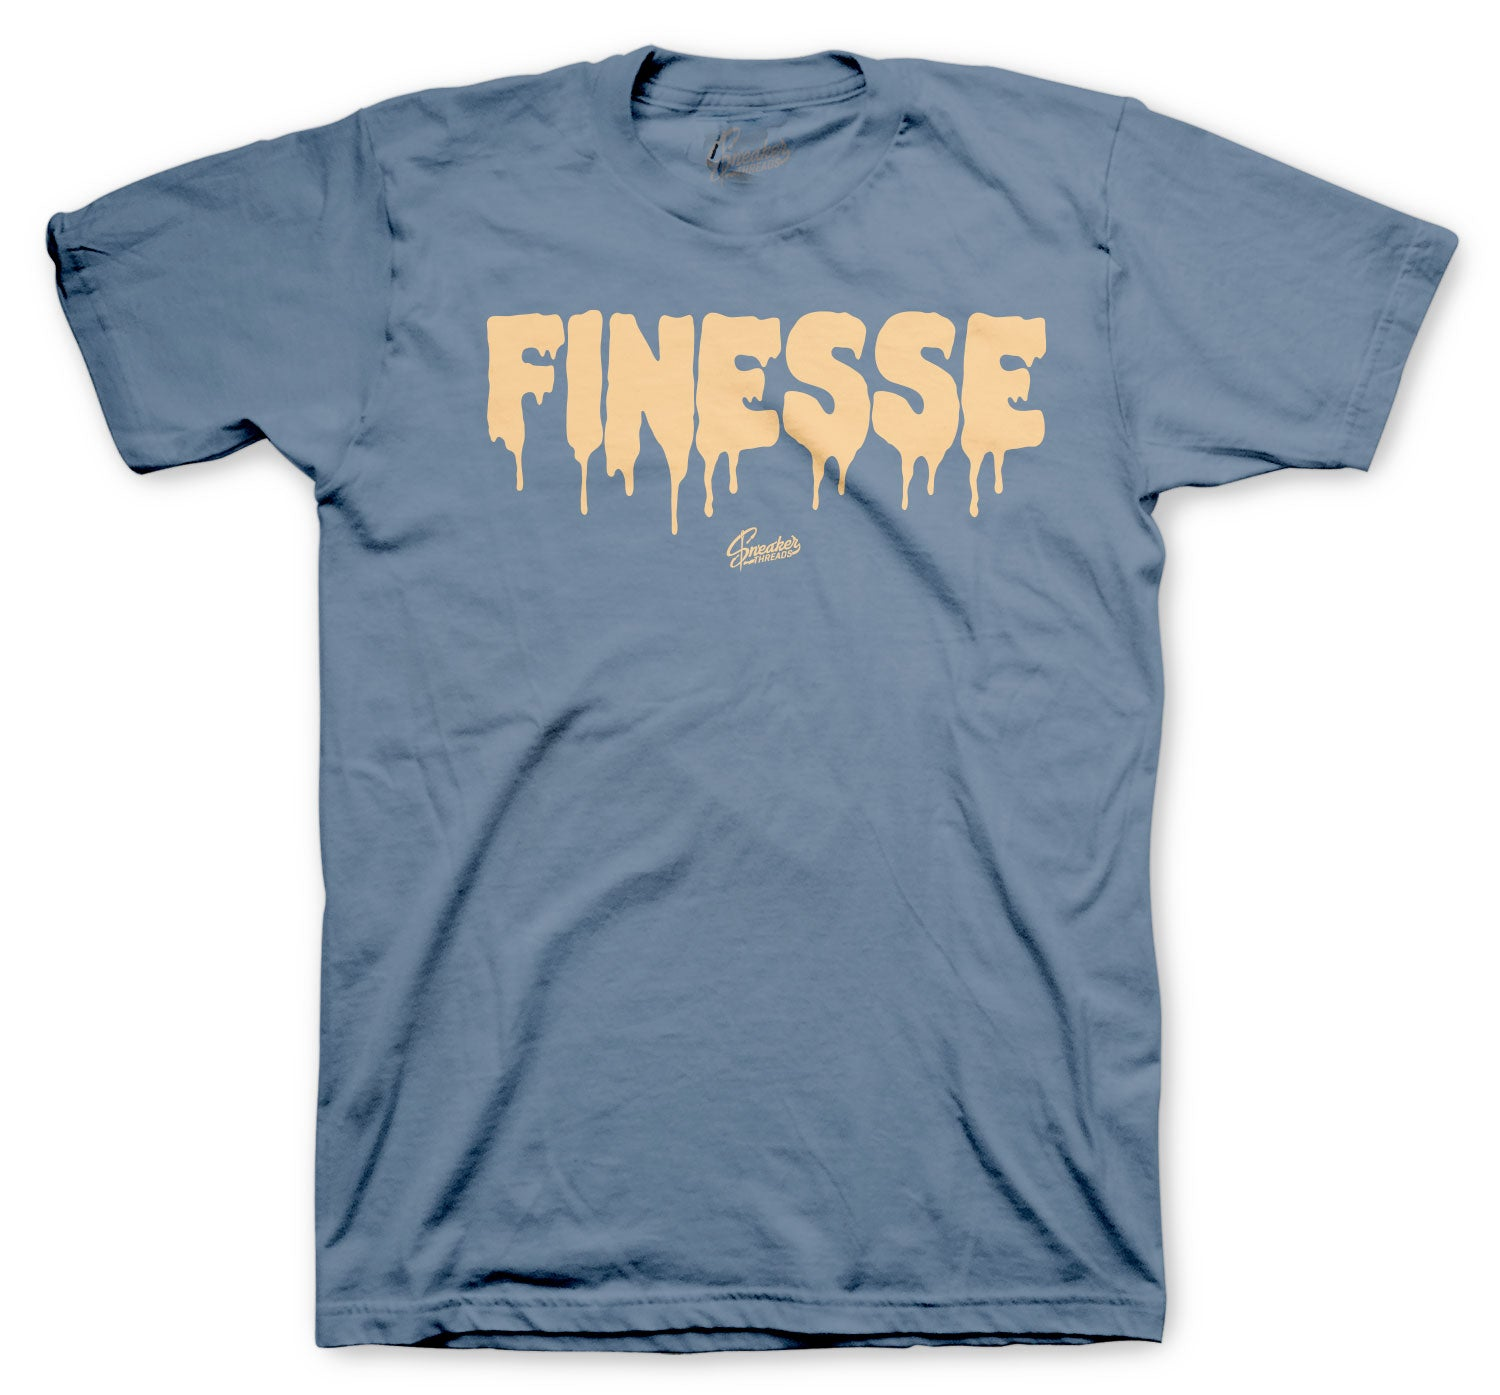 Yeezy Ash Blue 350 Shirt - Finesse - Blue